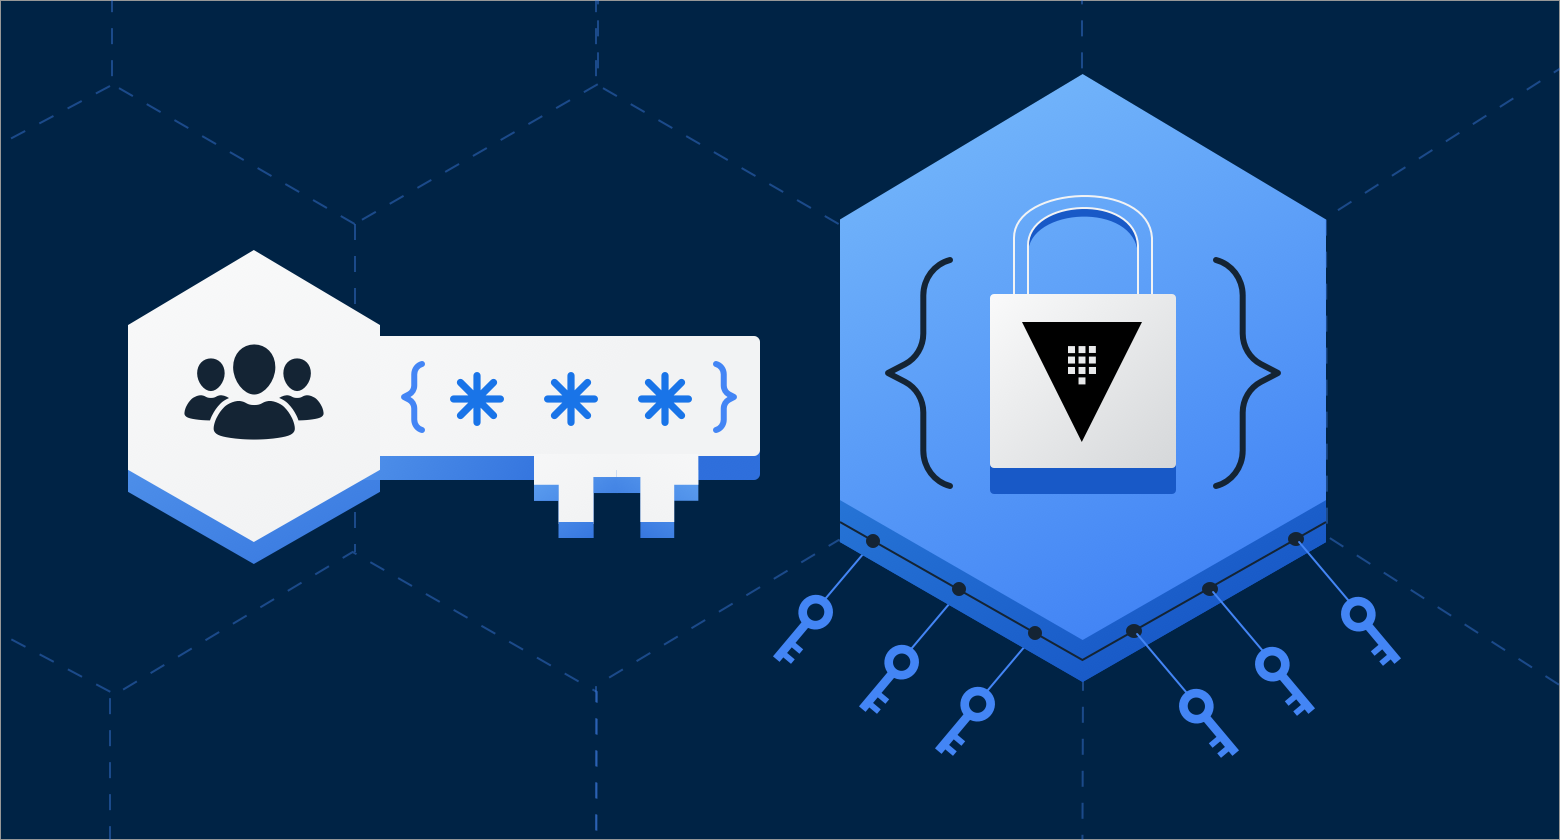 Banner: Key management with vault